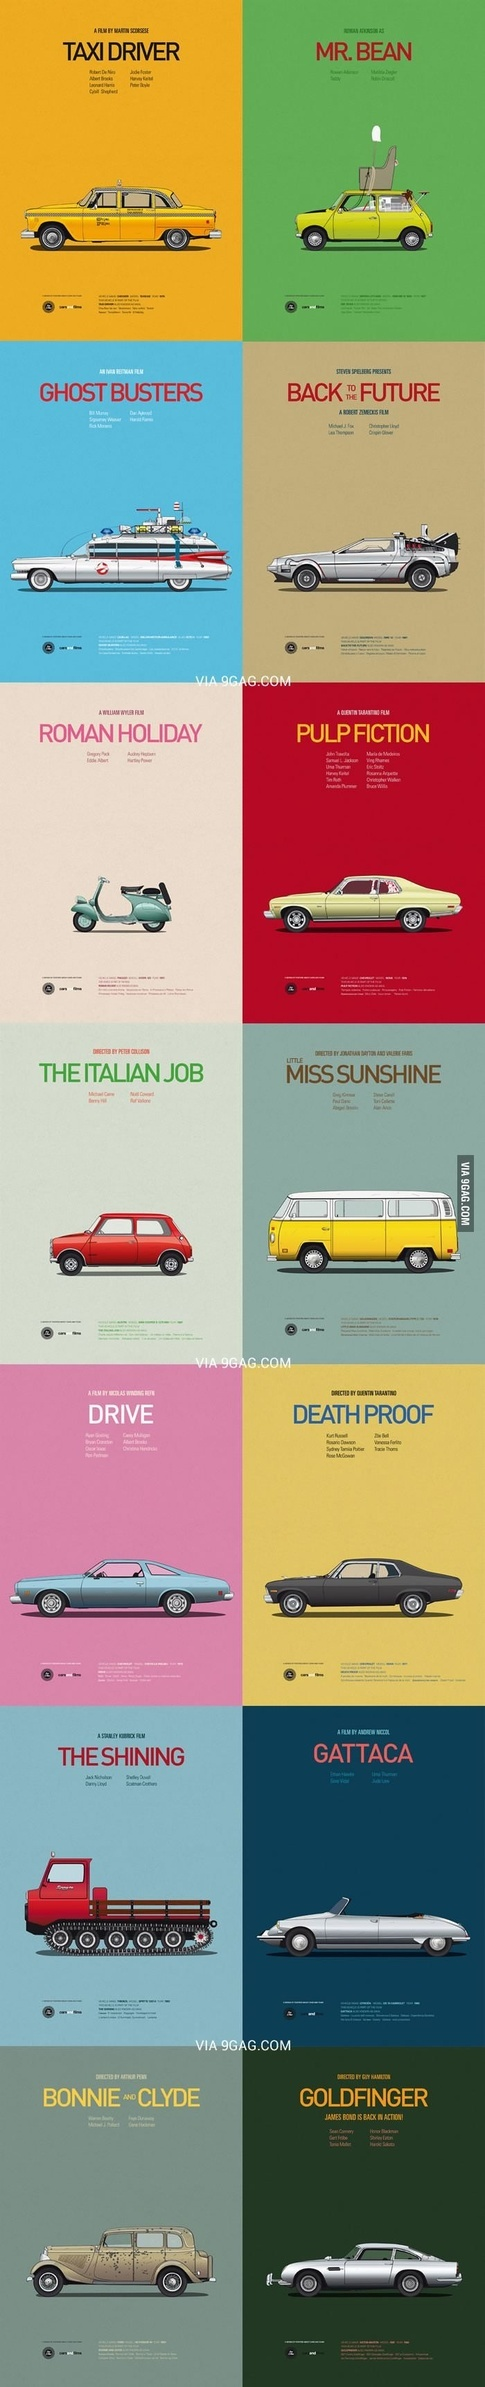 Greatest Movie Cars Posters